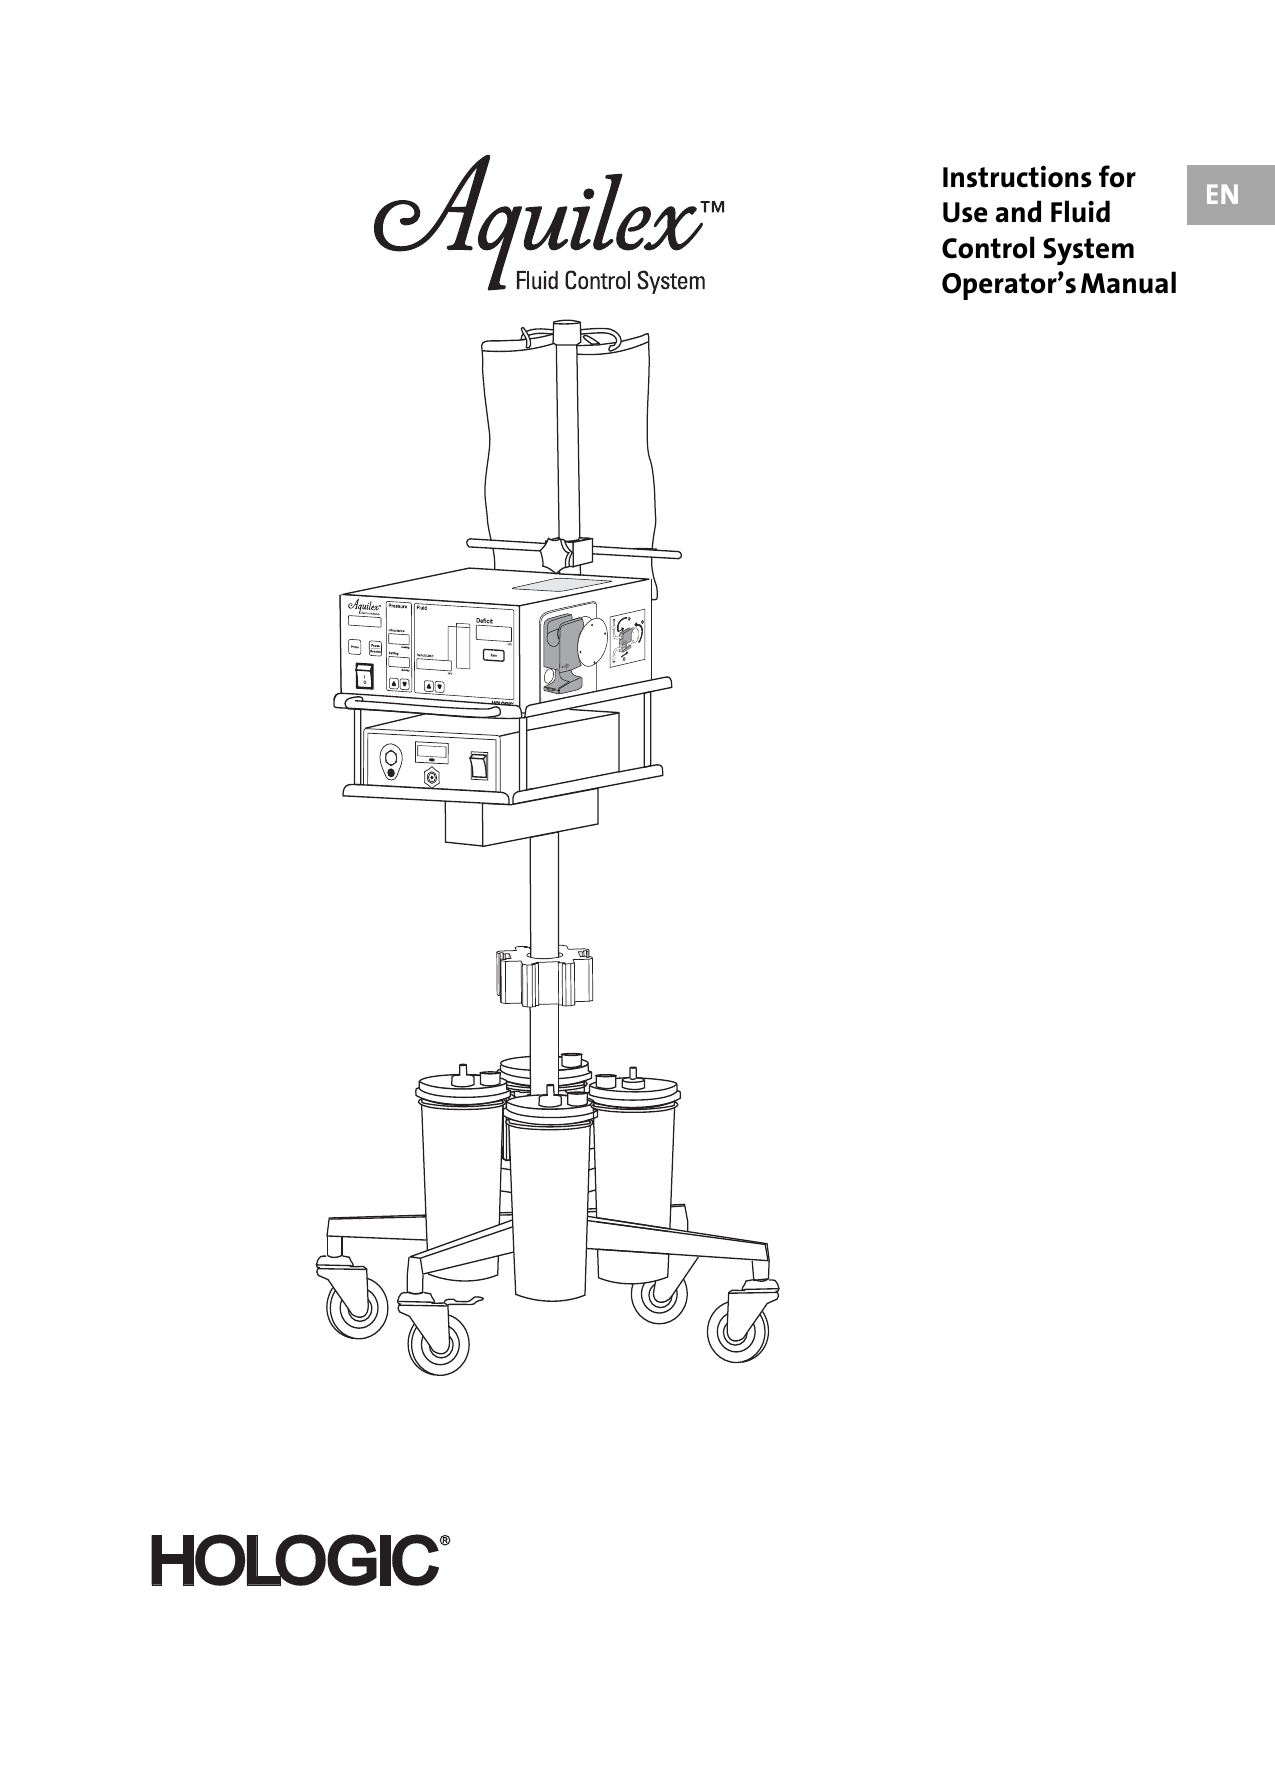 EN Instructions for Use and Fluid Control System Operator